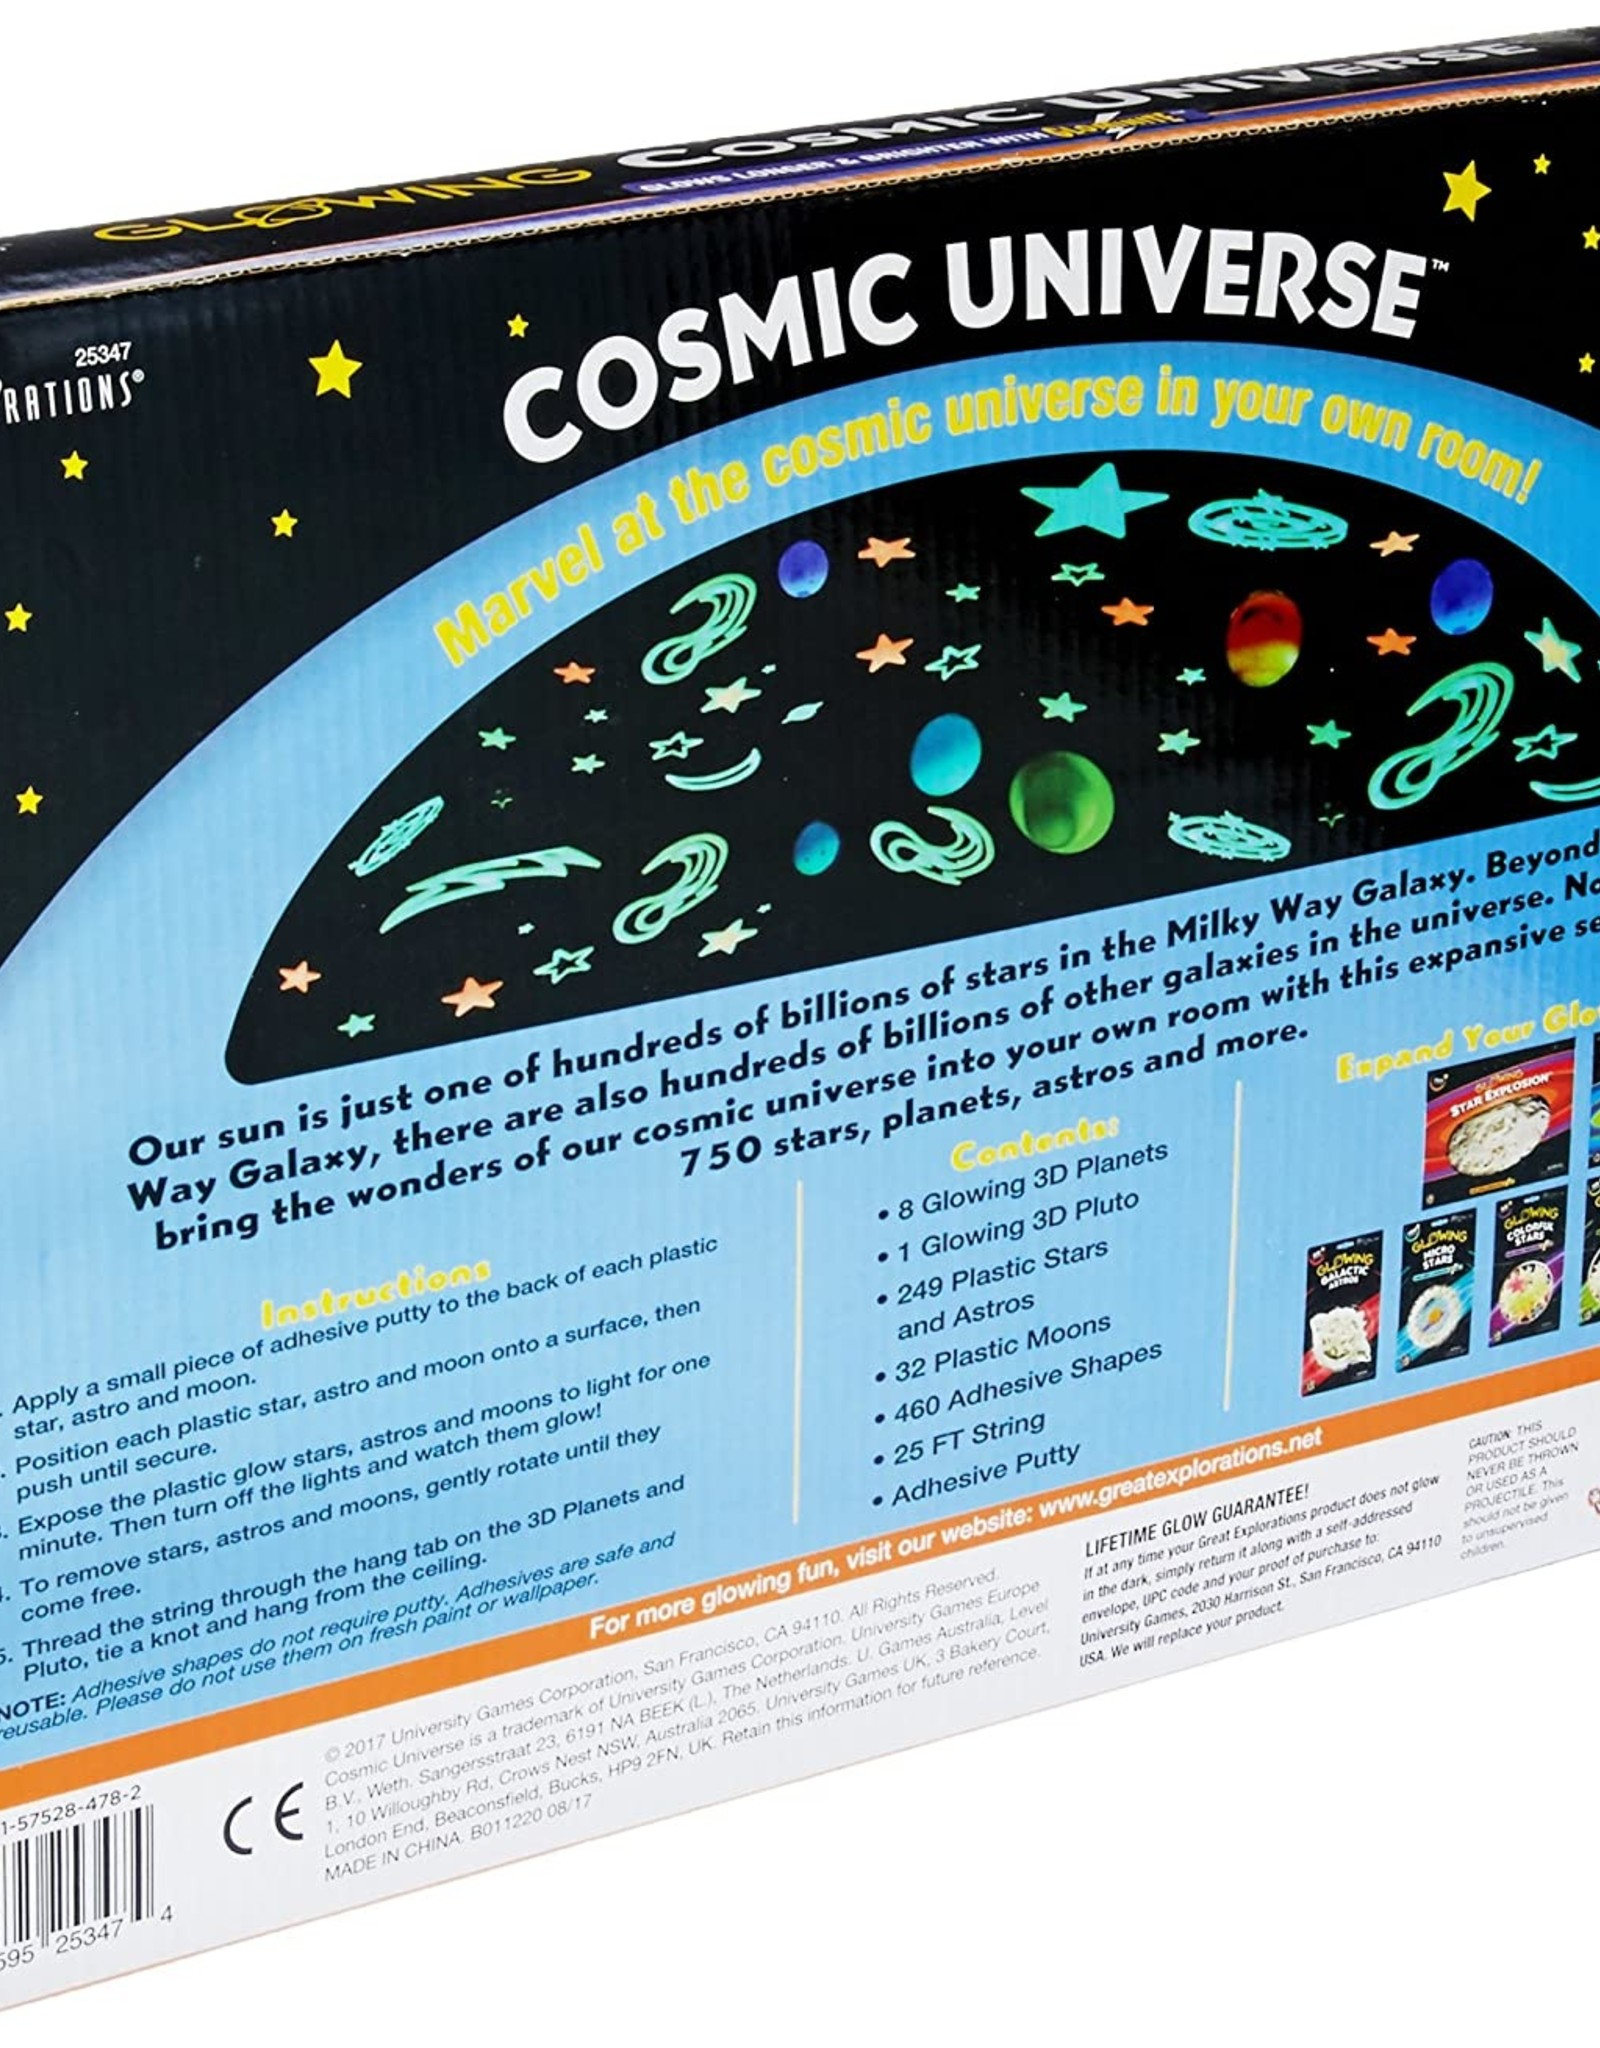 3-D Glowing Cosmic Universe